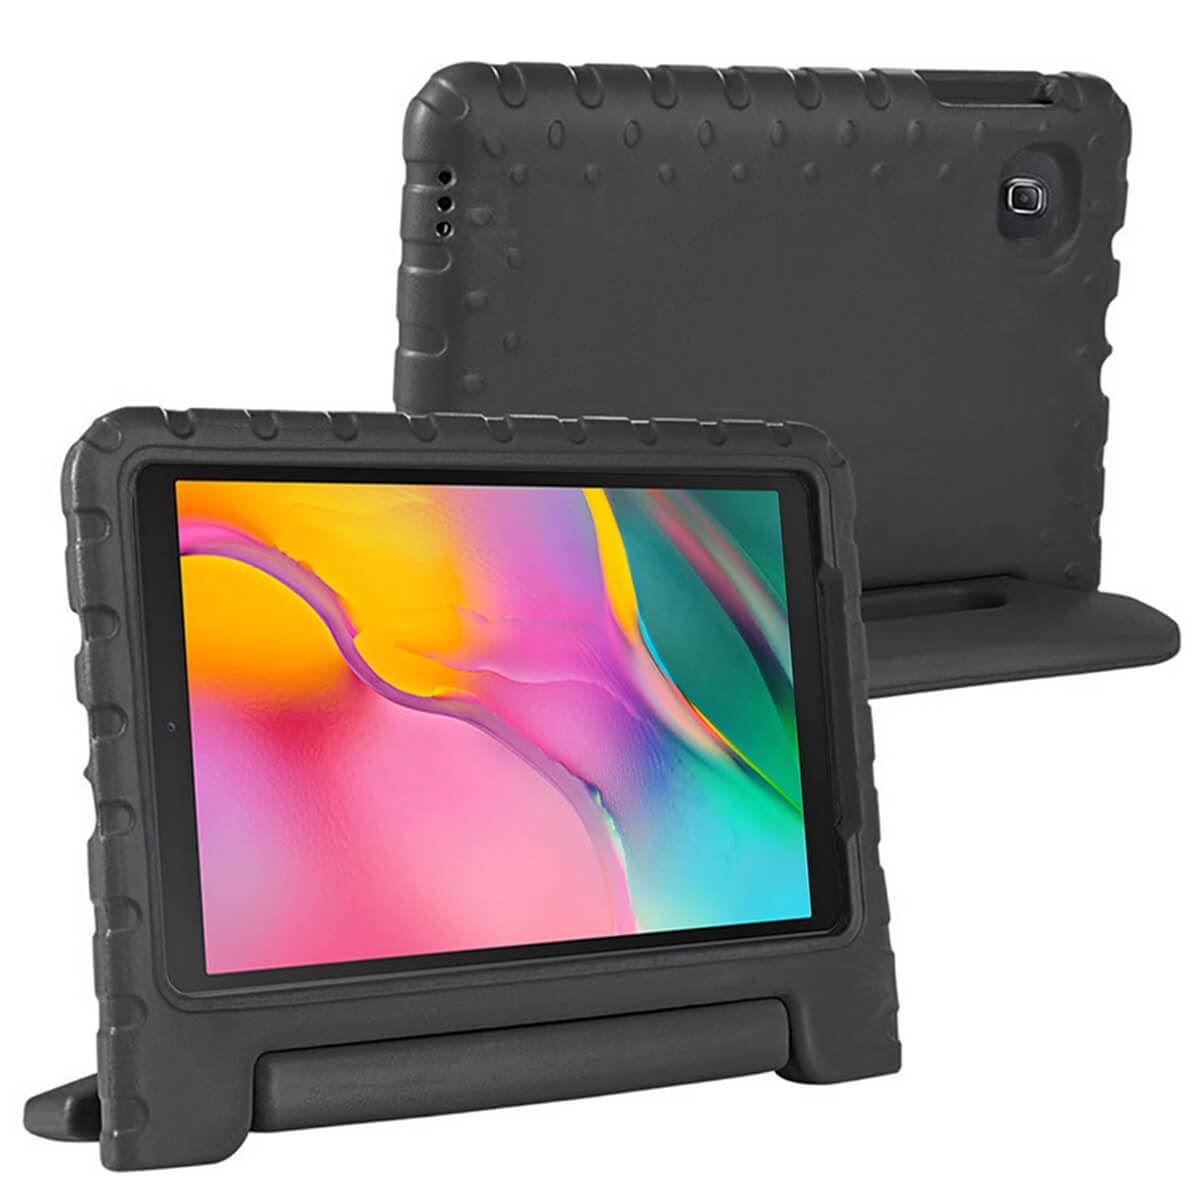 Shockproof-Protective-Case-Samsung-Galaxy-Tab-A-10-1-2016-Kids-Cover thumbnail 22